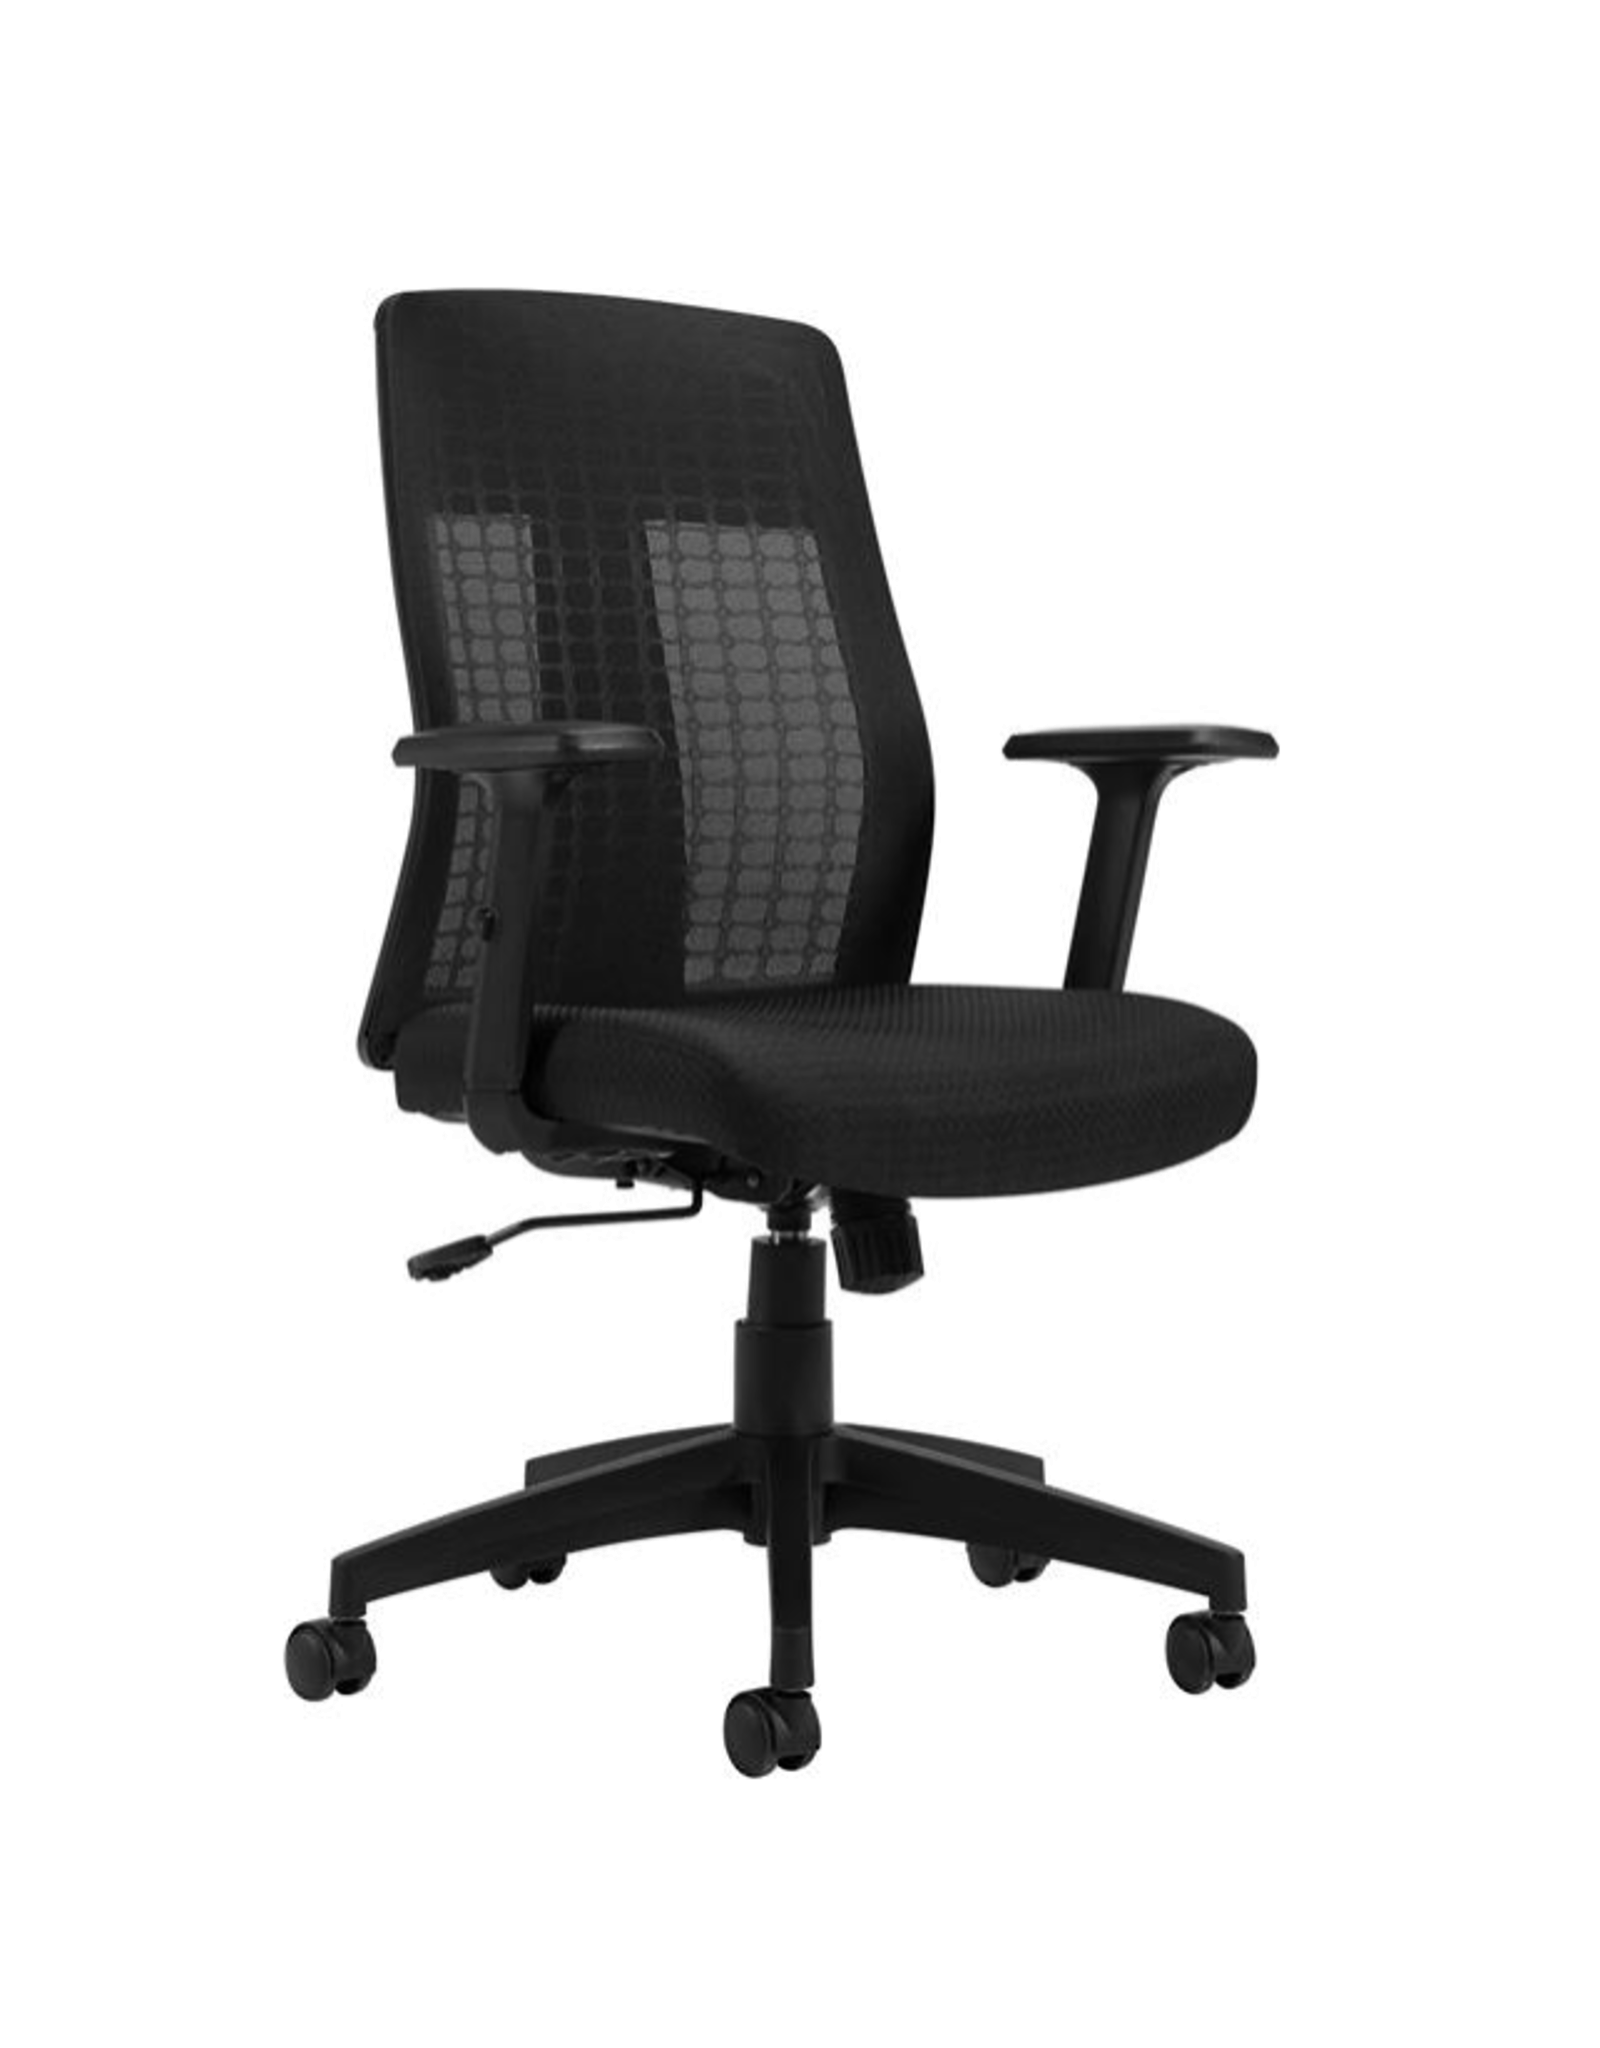 Offices to Go Chair - Offices to Go - Flint - Mesh Back Synchro-Tilter - Black